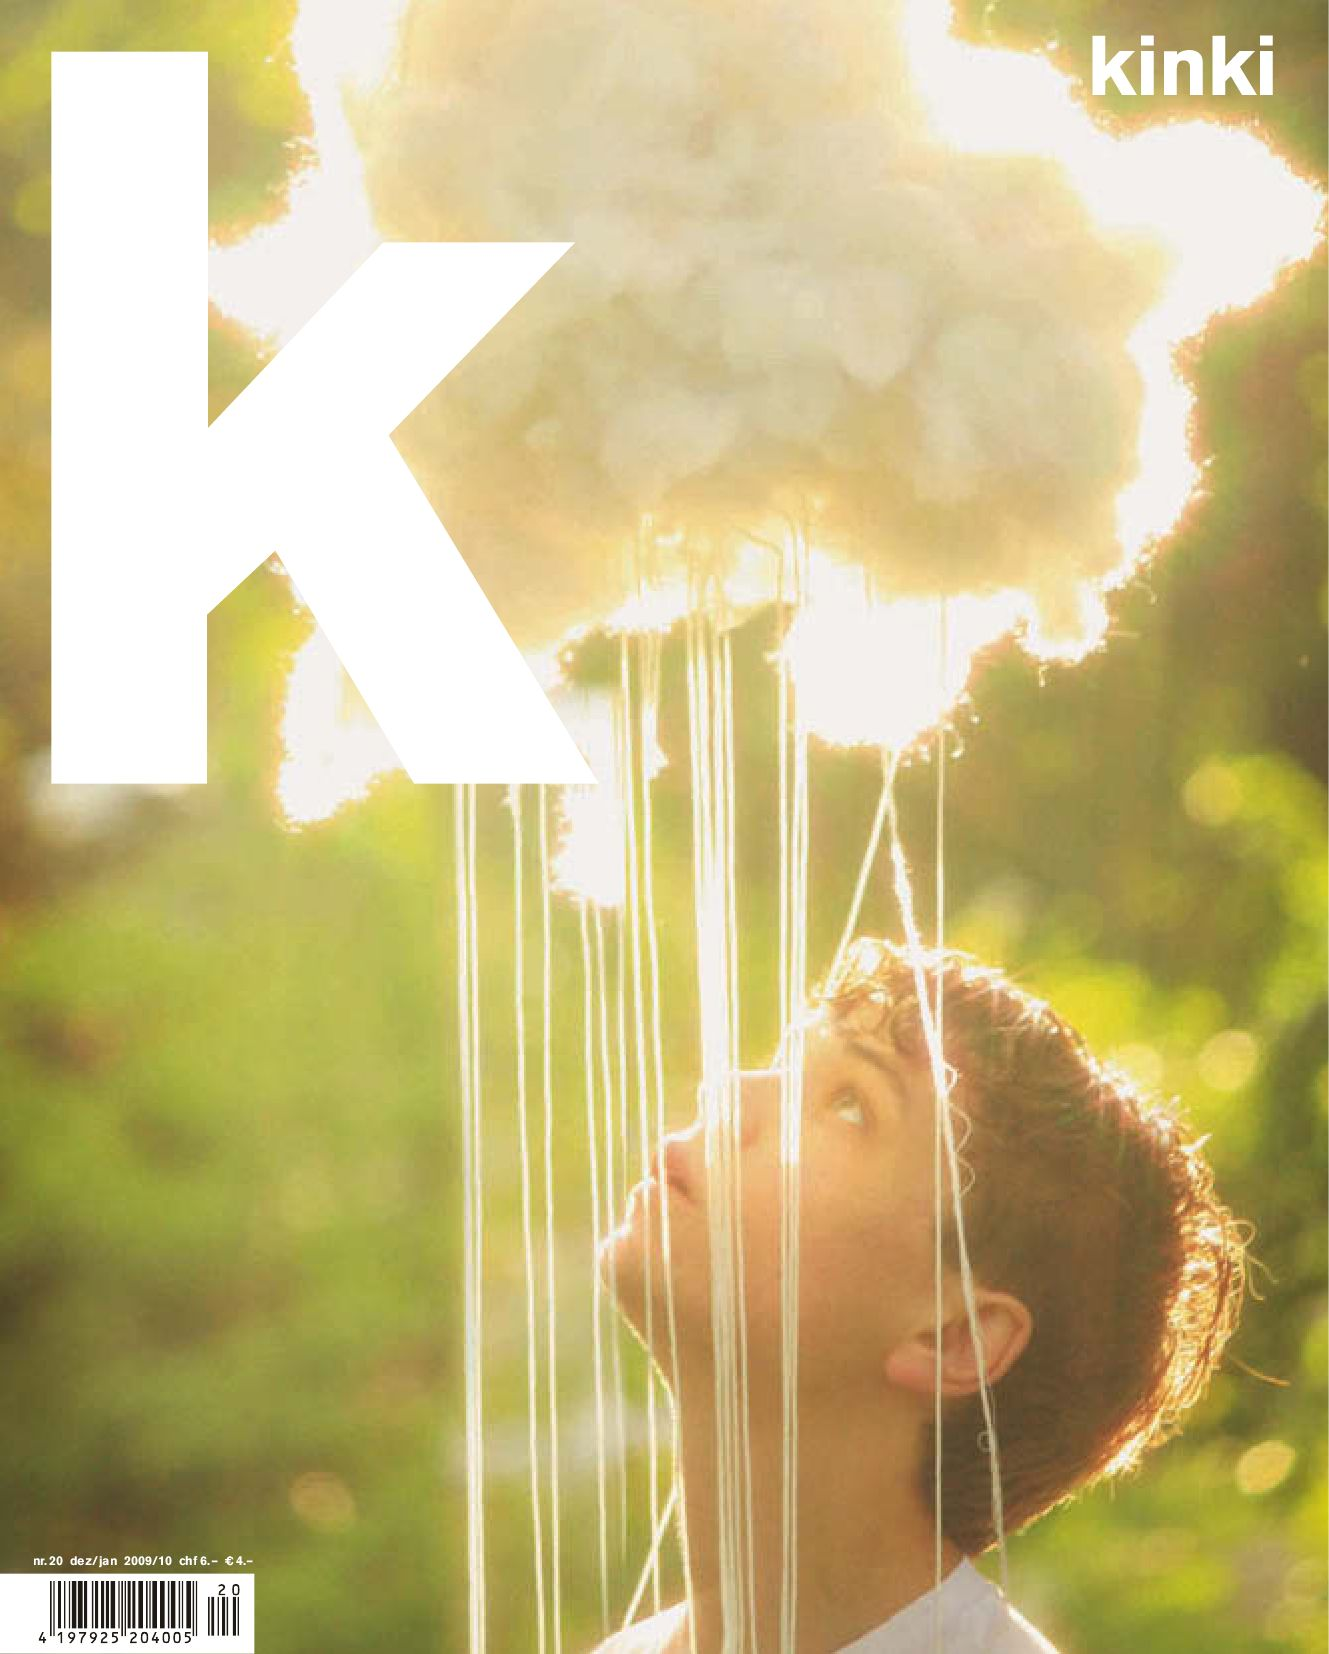 Kinki Magazin 20 By Kinkimag Issuu